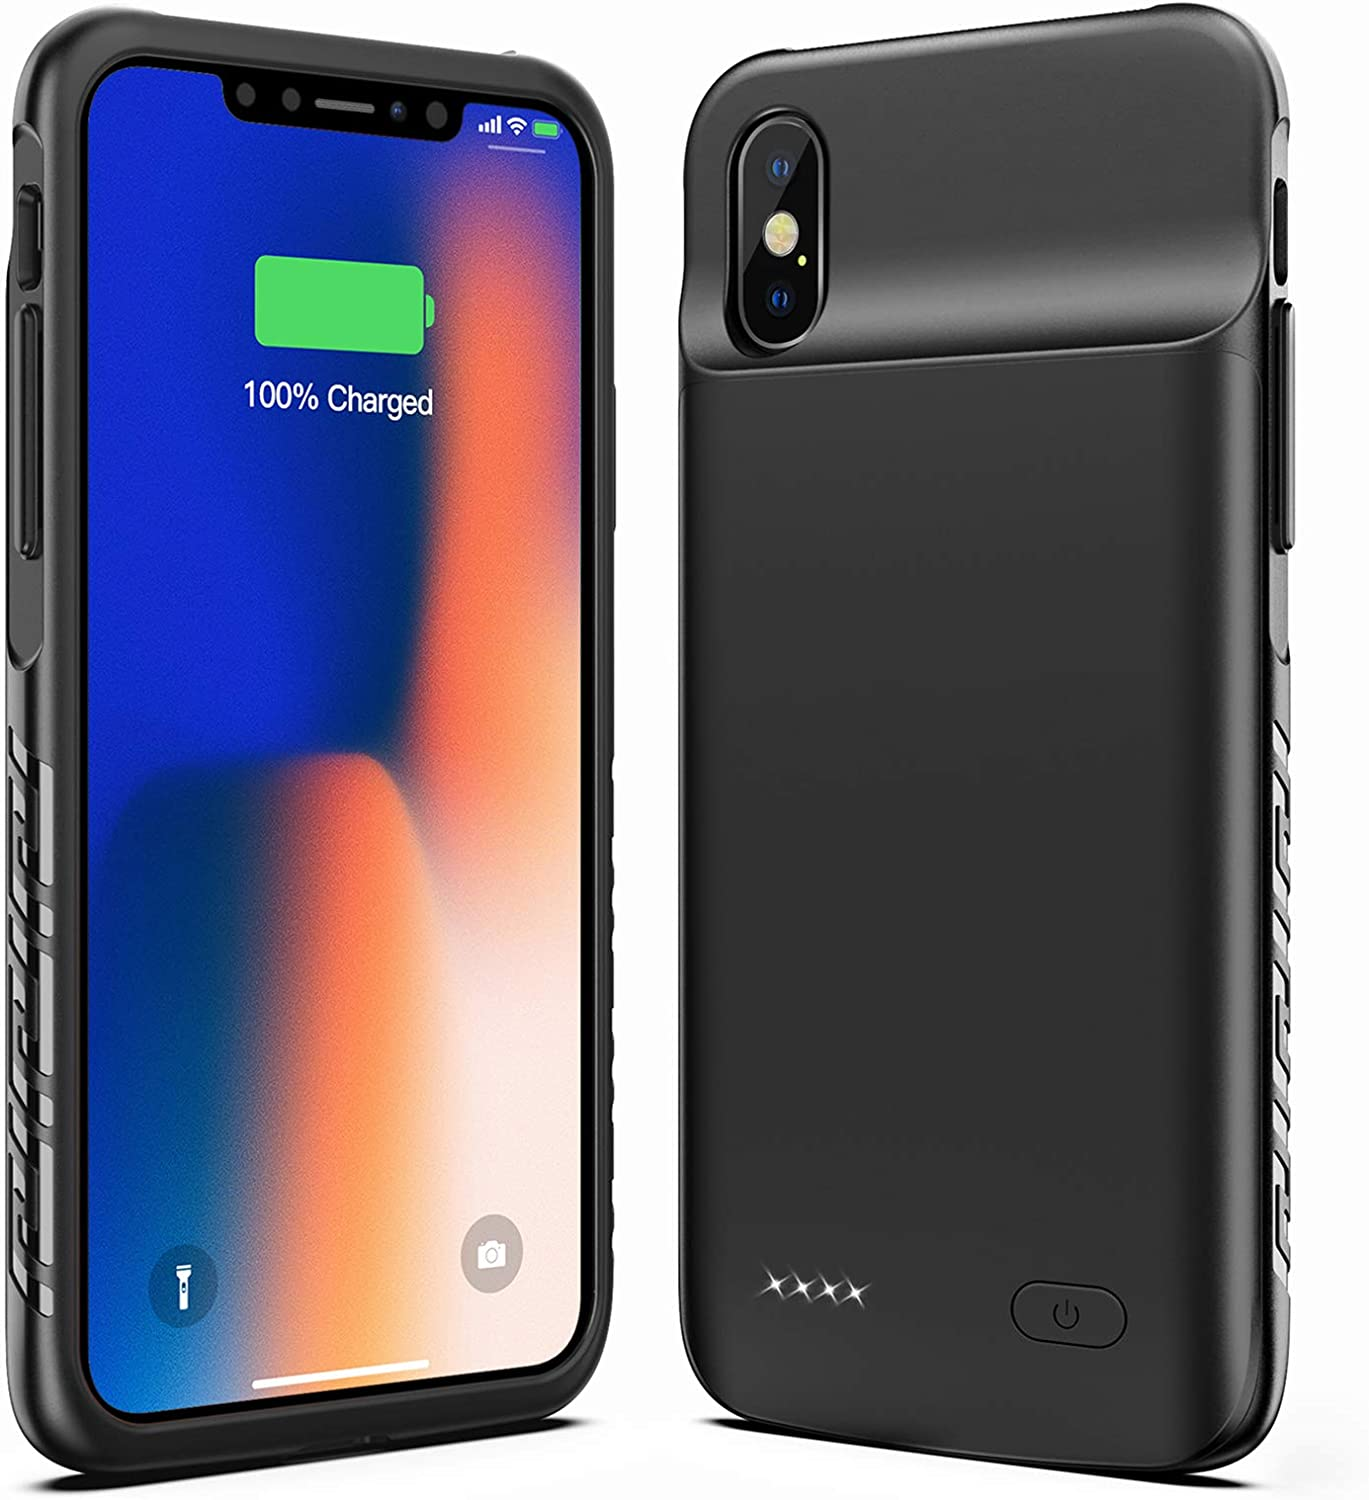 Amazon Com New Version Swaller Battery Case For Iphone X Xs 10 4000mah Slim Portable Charging Case Protective Rechargeable Charger Case Extended Battery Compatible With Iphone X Xs 10 5 8 Inch Black